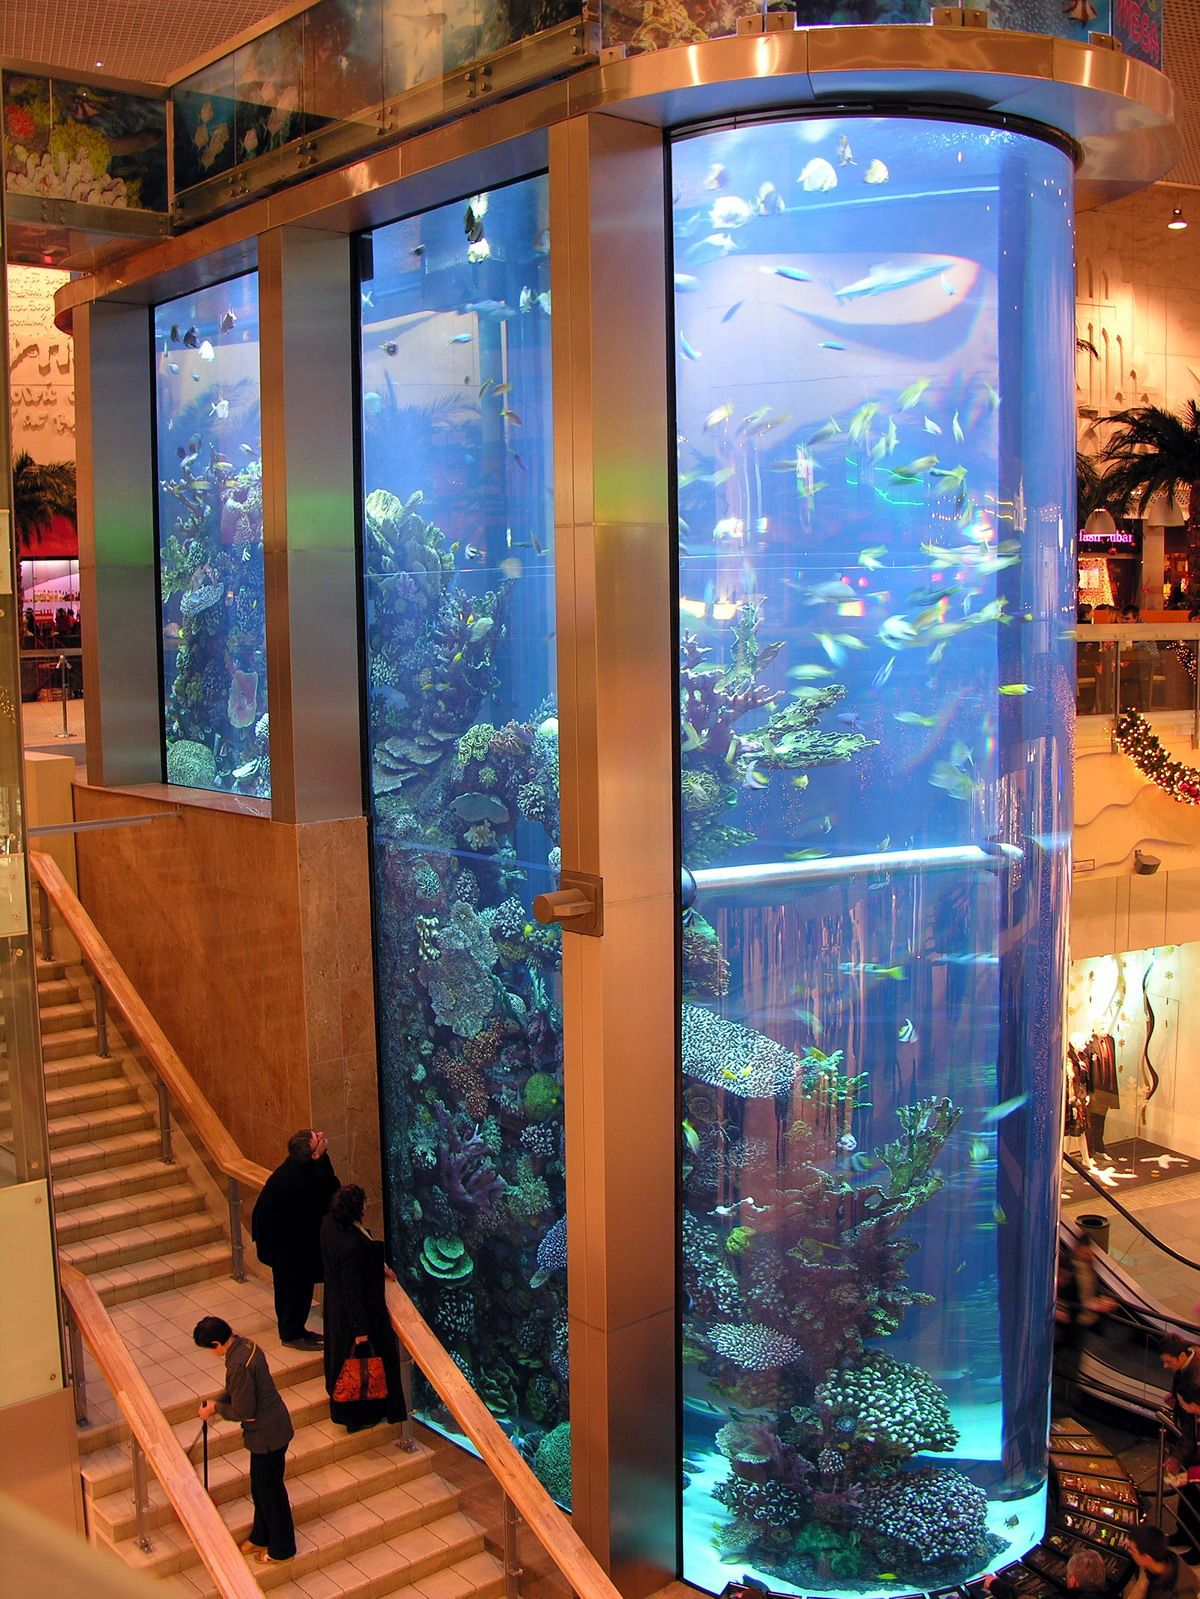 This is the largest aquarium and the highest in the baltic states